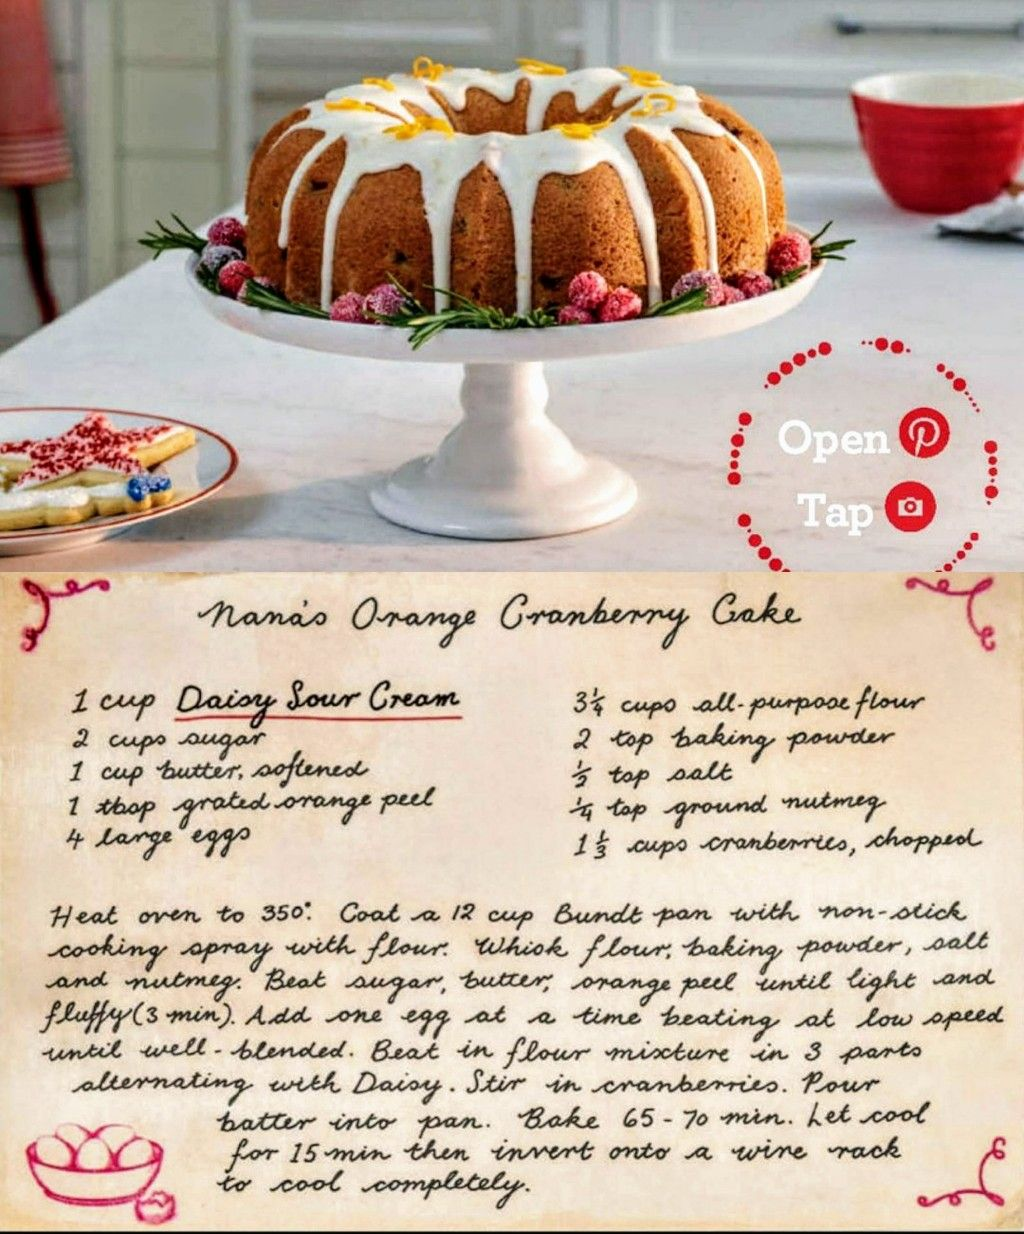 Pin By Stephanie Beard On Edible Dessert Daisy Sour Cream Baking Desserts